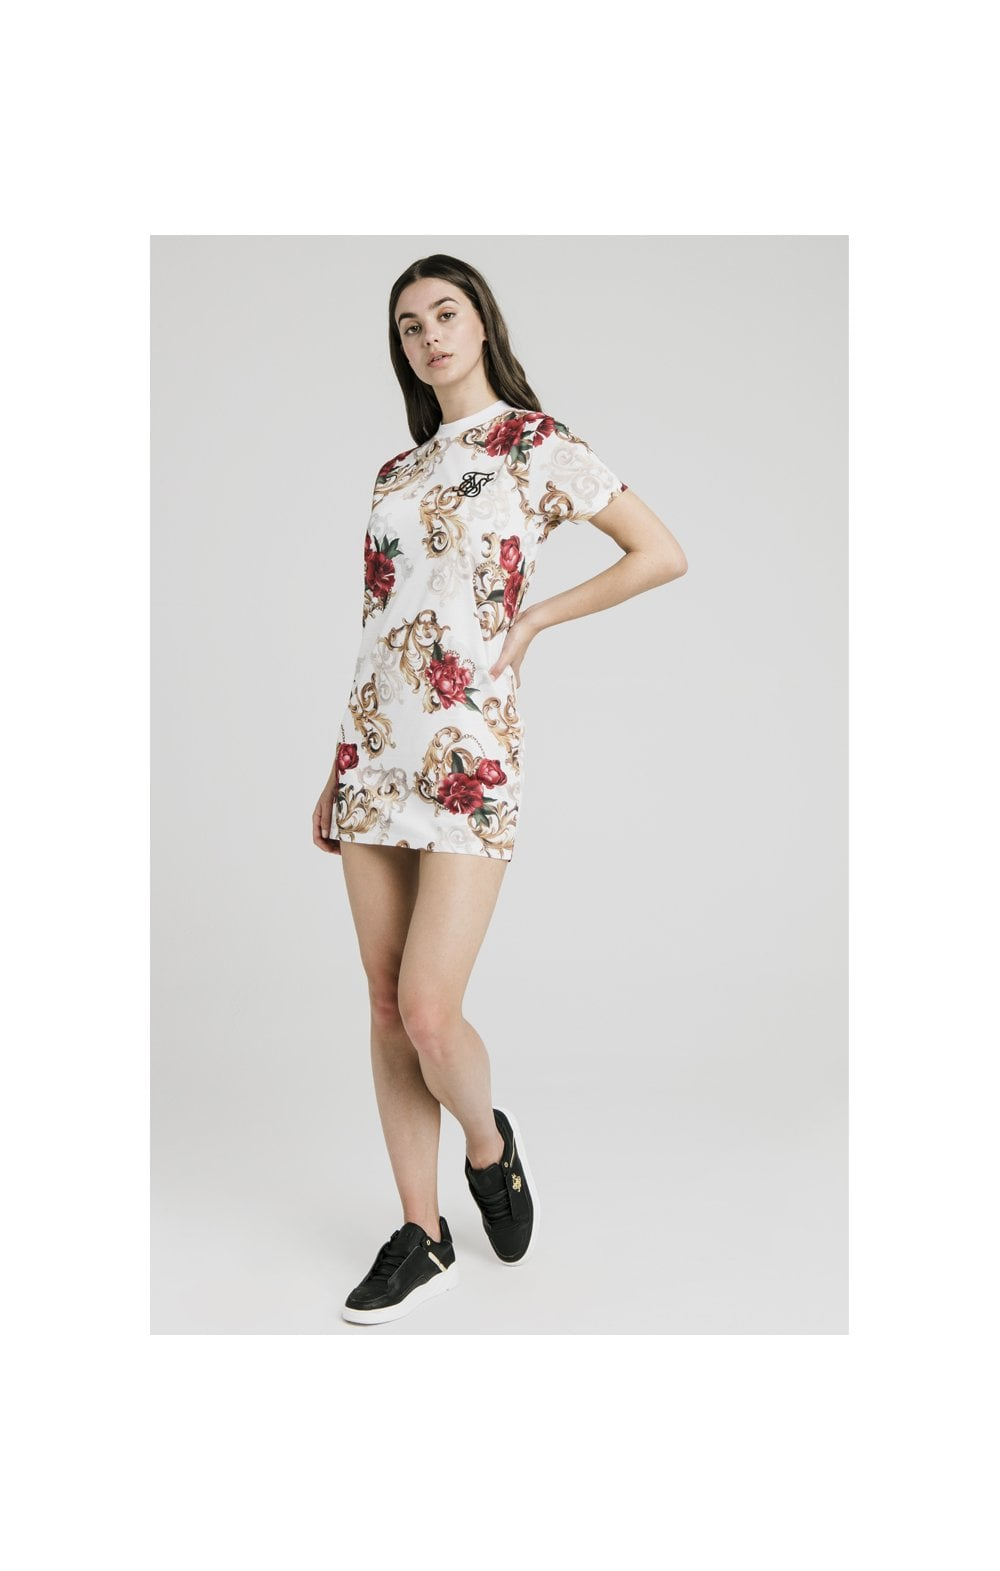 SikSilk T-Shirt Dress - White & Floral Elegance (4)